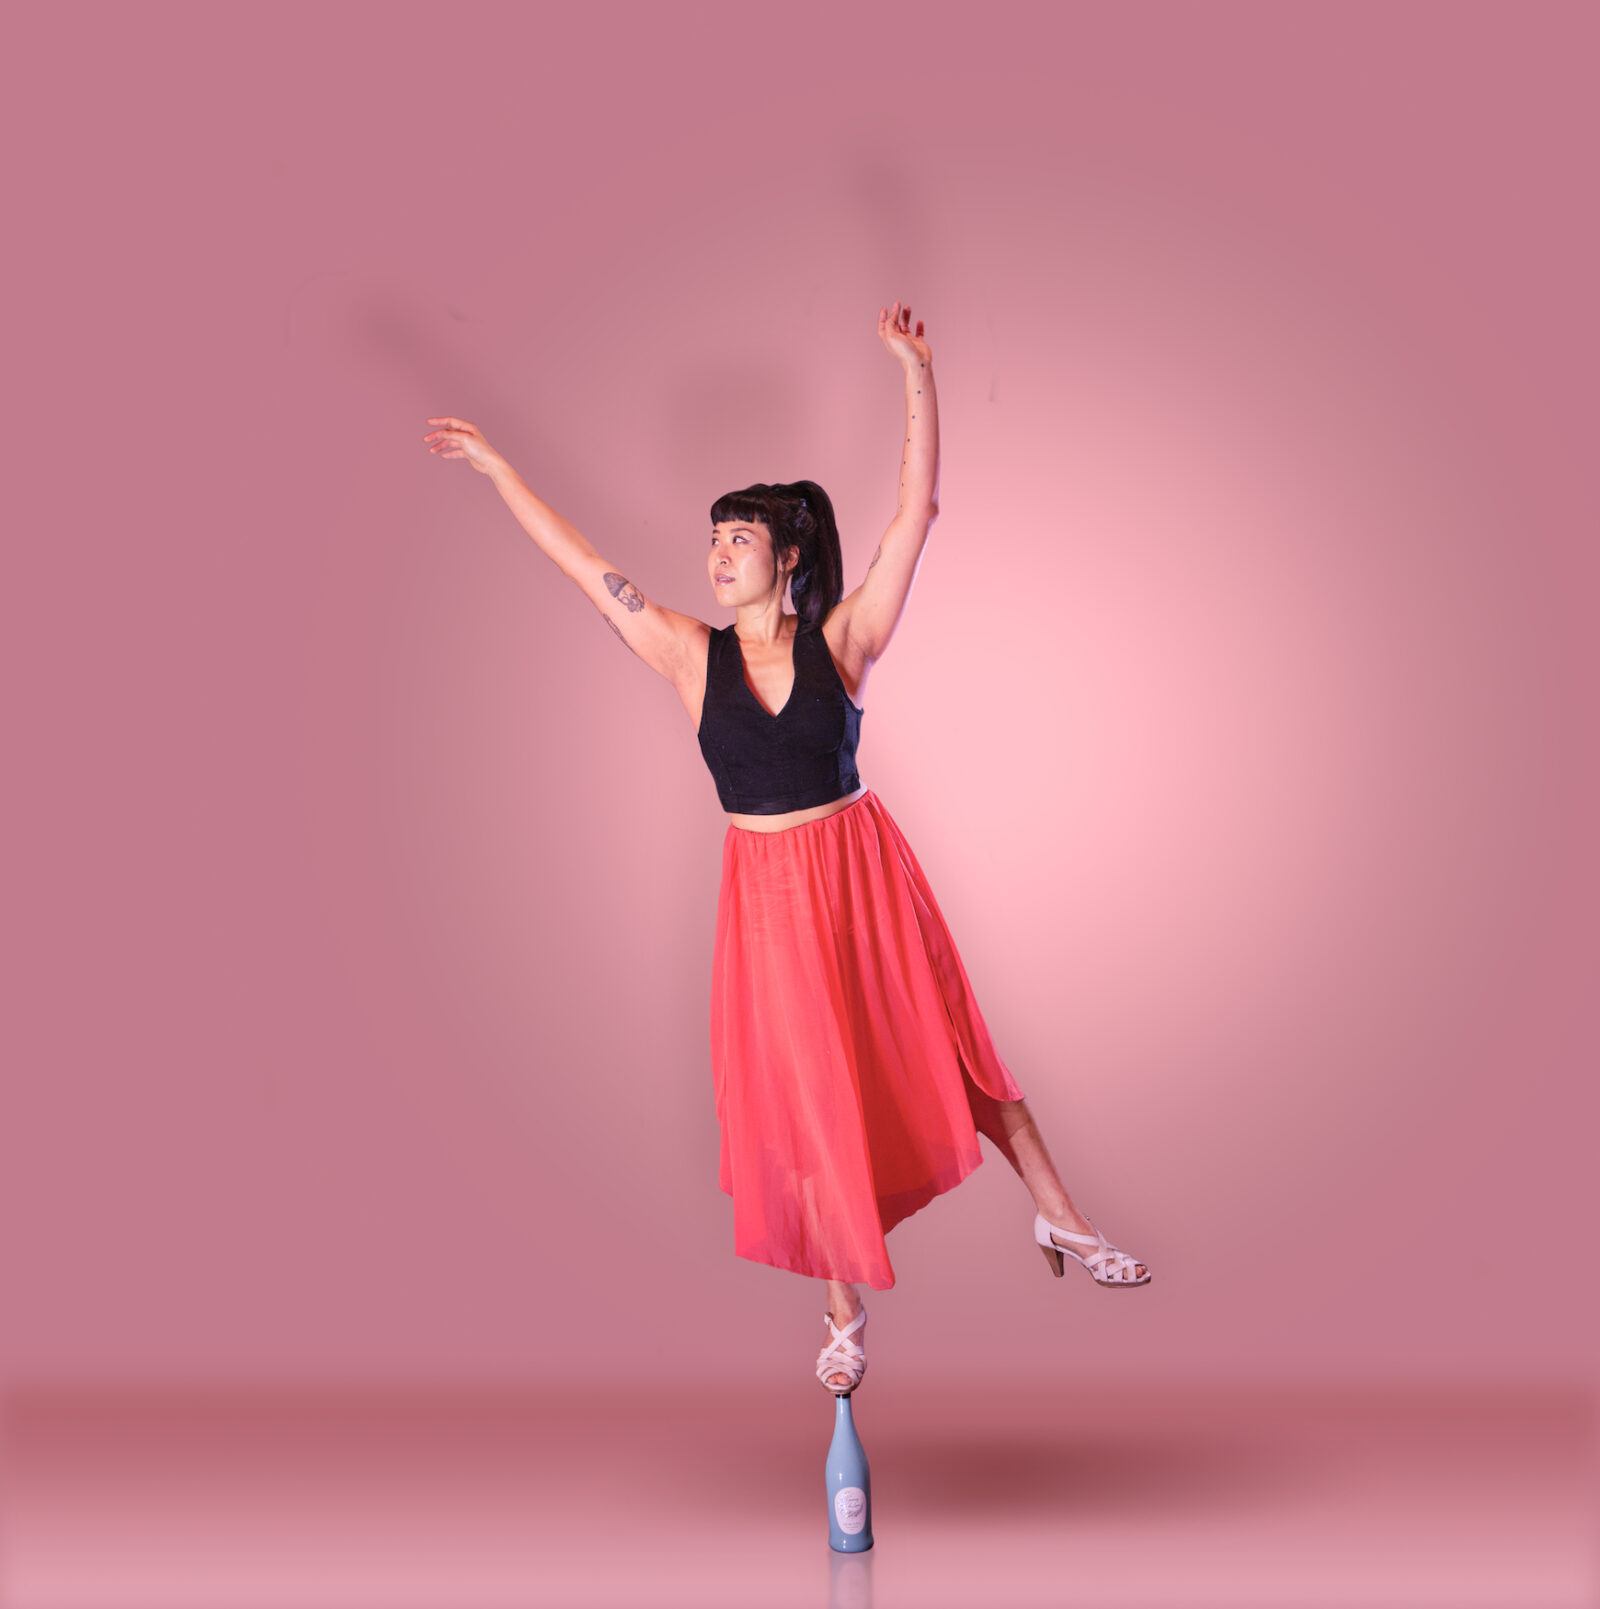 Renee balancing on a bottle posed against an all-pink backdrop